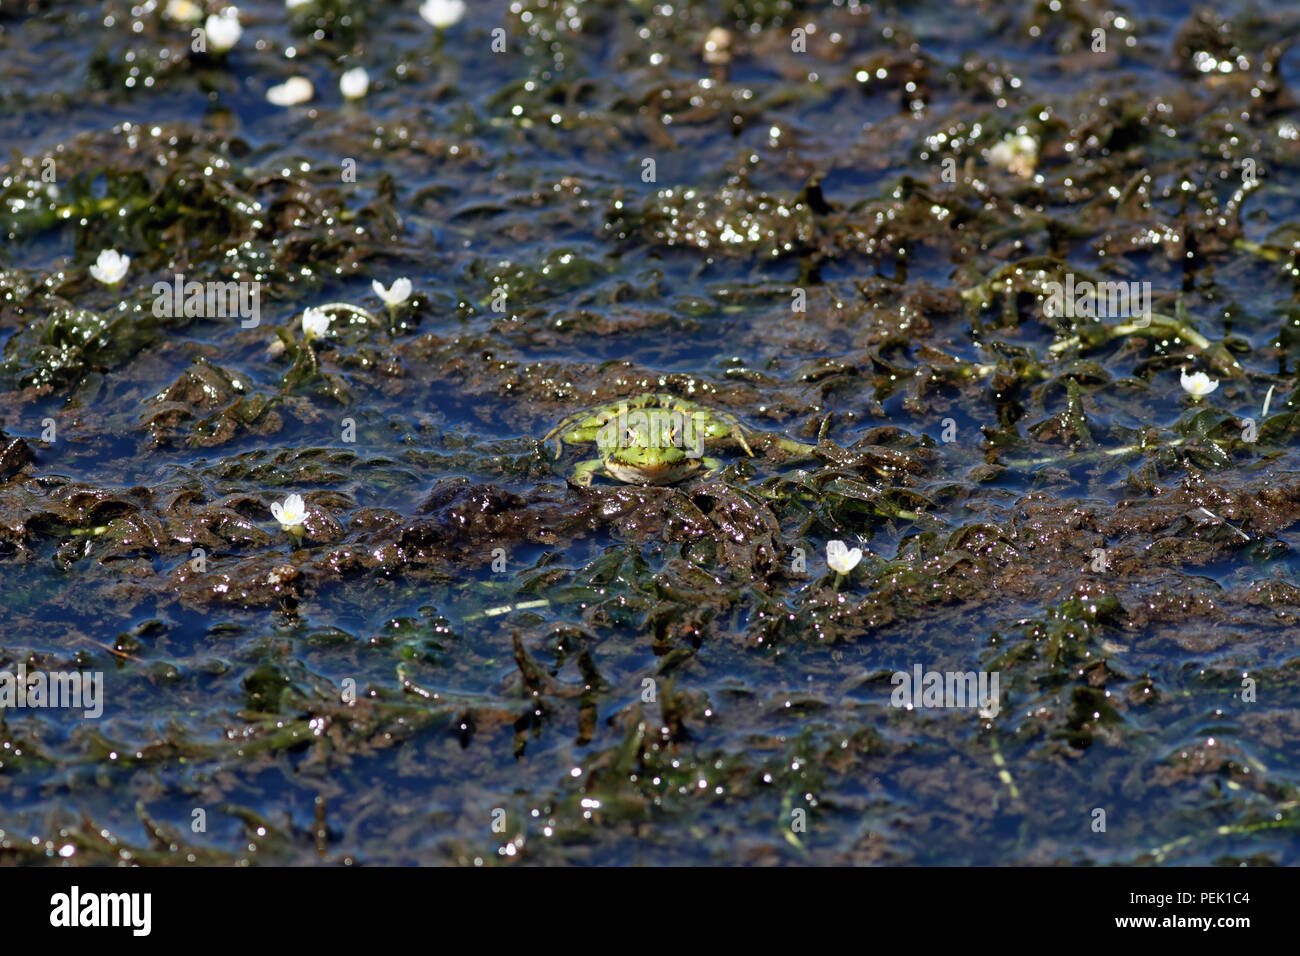 Common European green frog in a swamp - north of Portugal Stock Photo